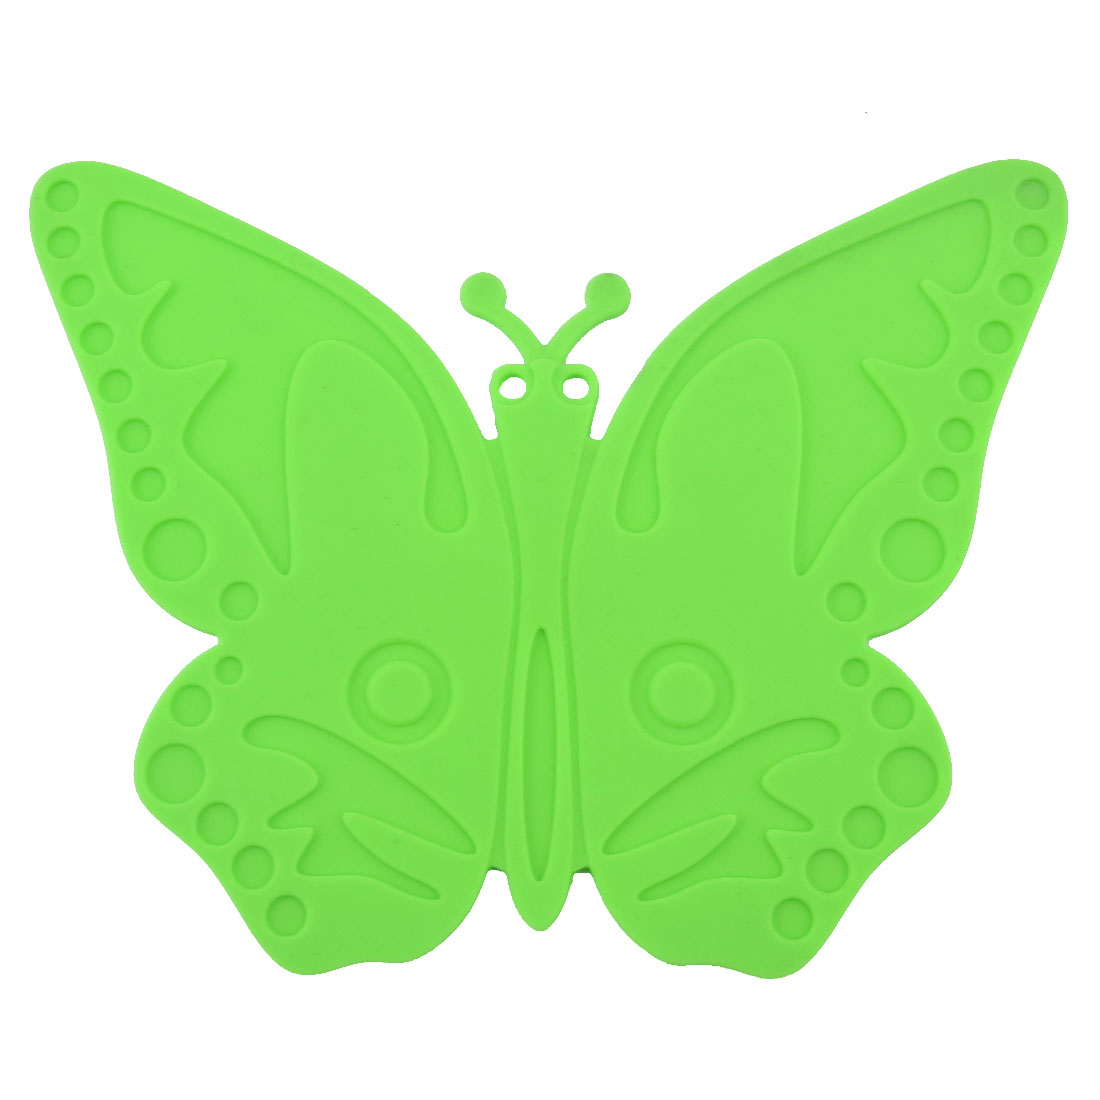 Silicone Butterfly Design Heat Resistant Mat Cup Coaster Cushion Placemat Green